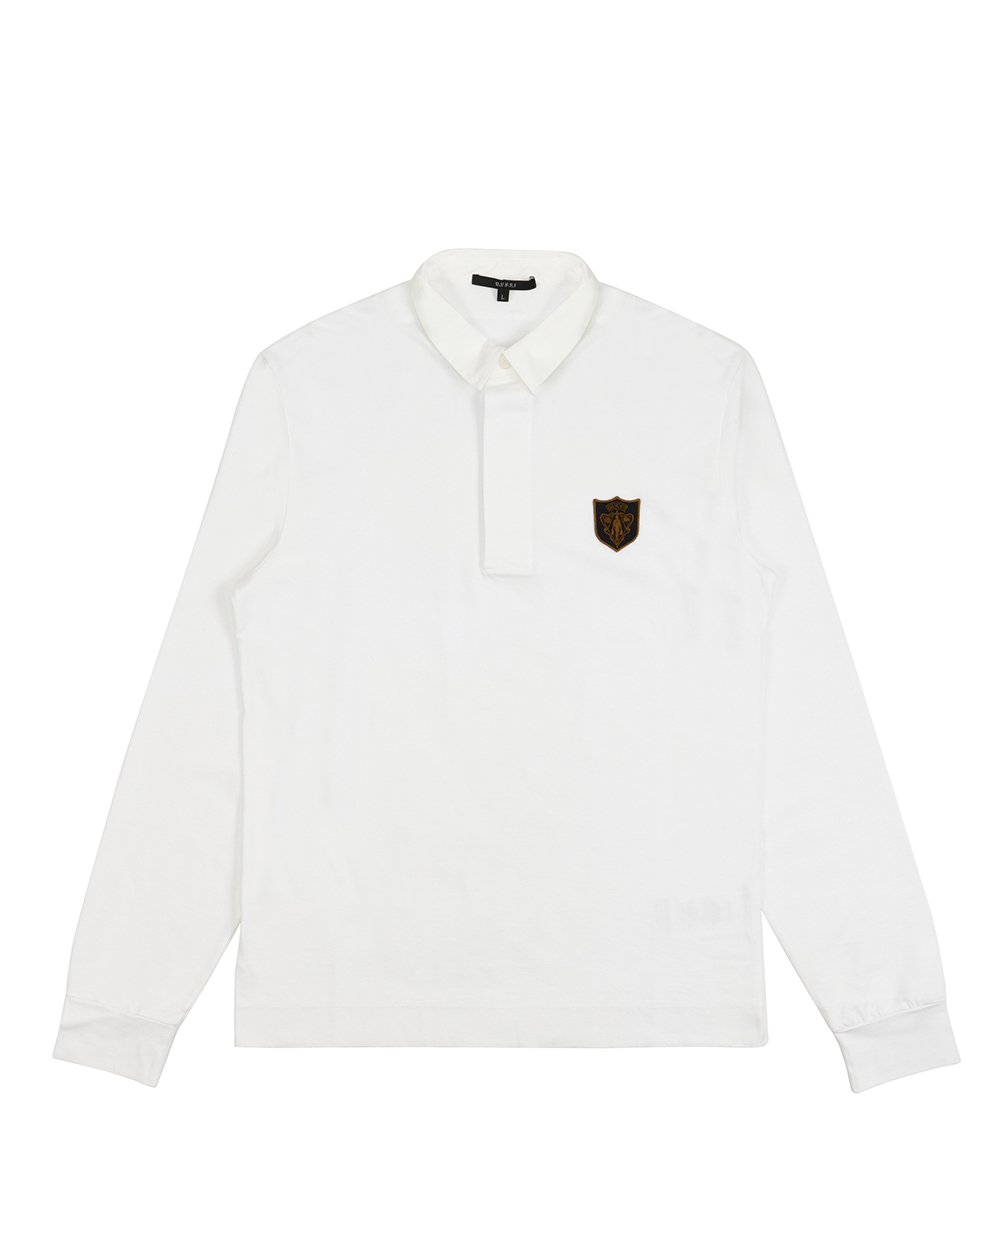 Cotton Long-Sleeves Polo Shirt